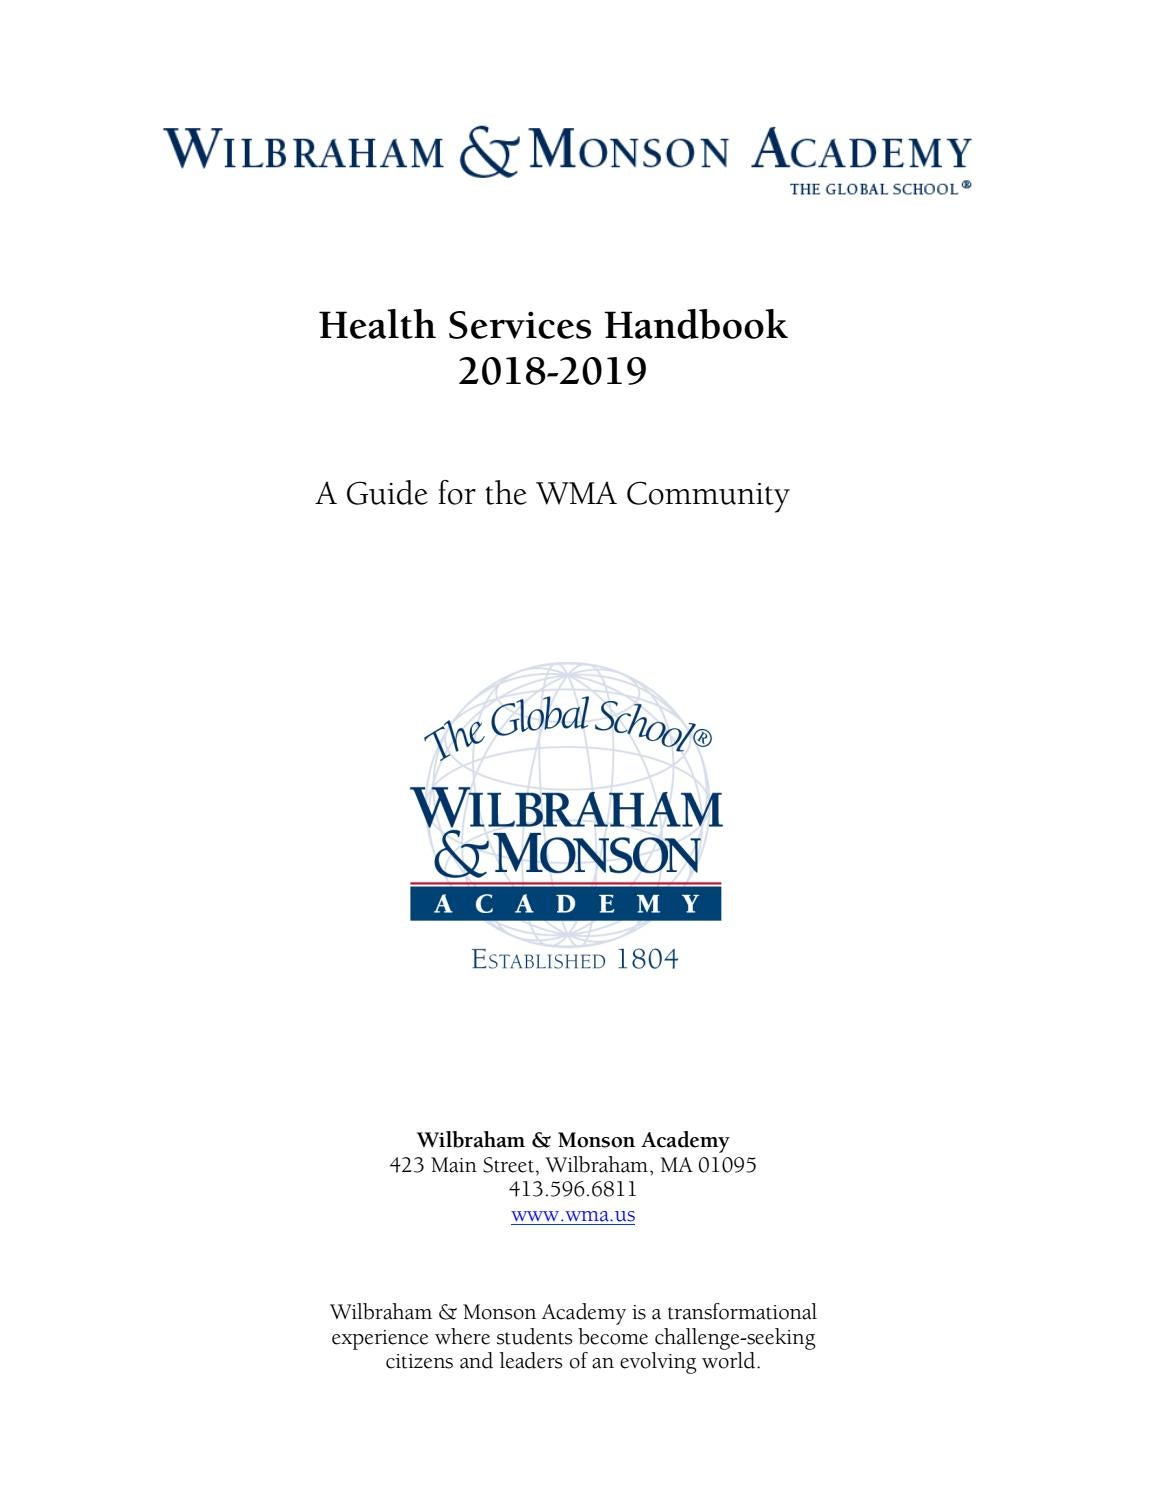 Health Services Handbook 2018 2019 By Wilbraham Monson